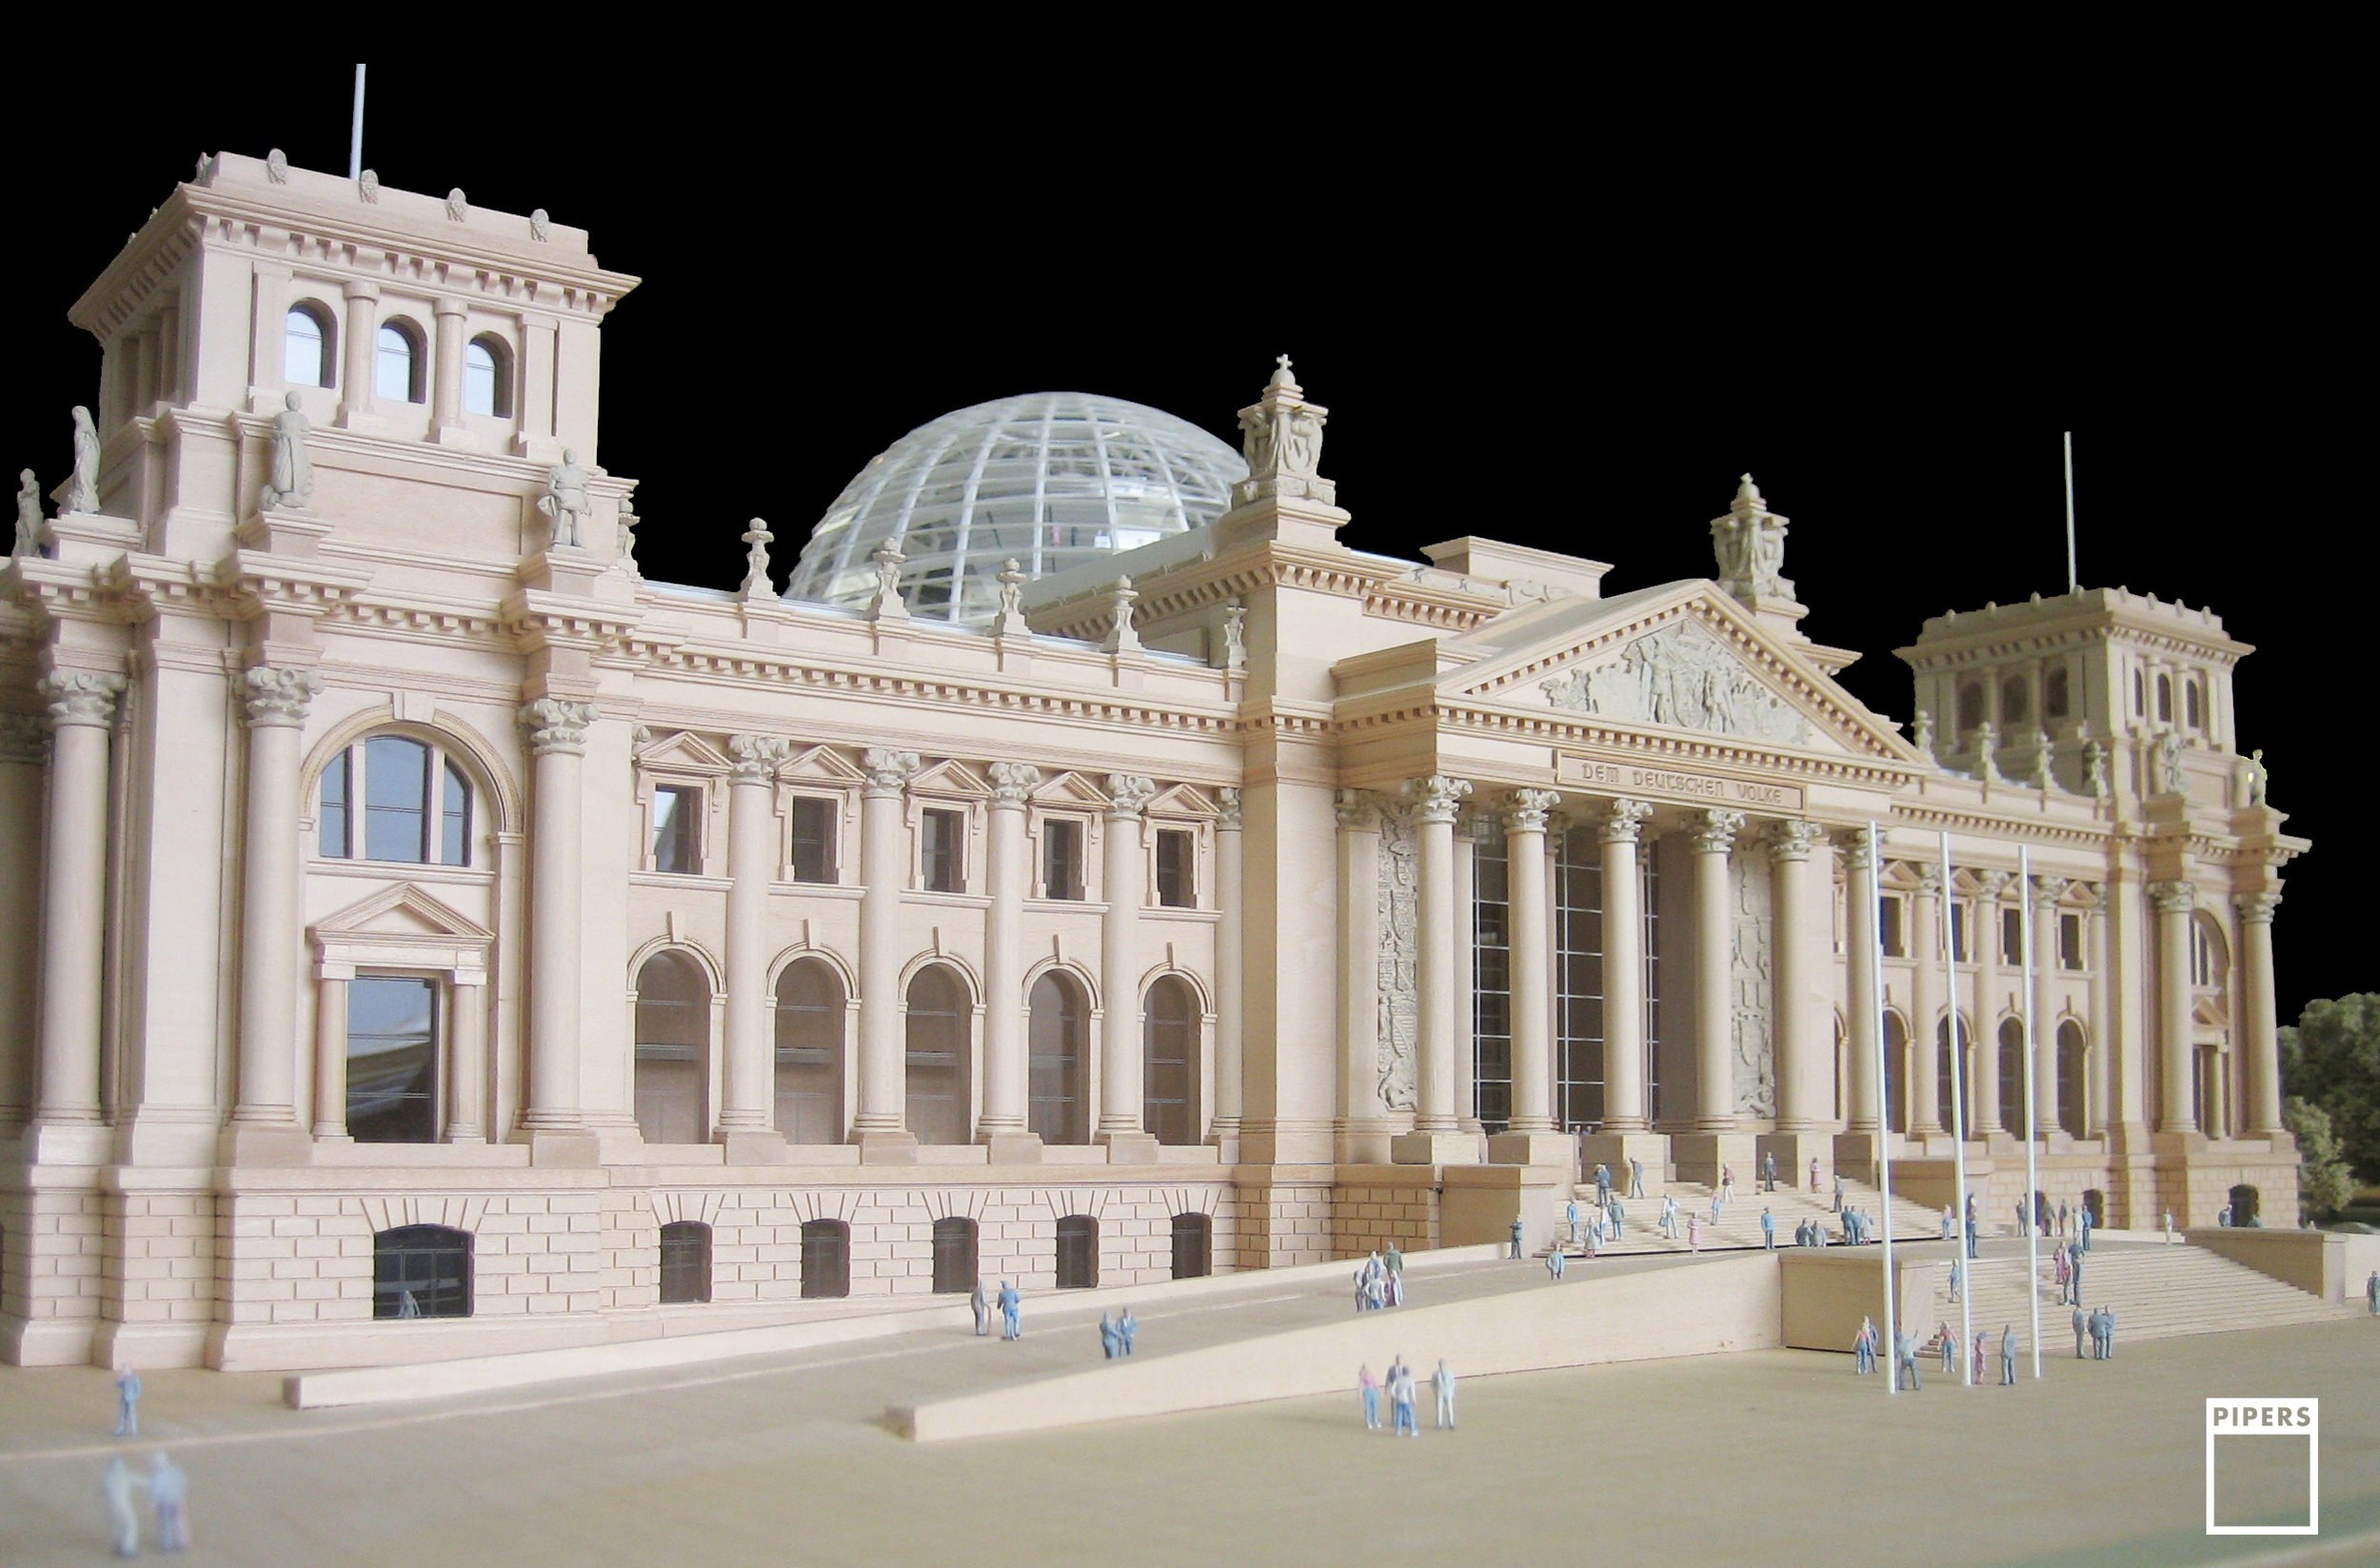 REICHSTAG BUILDING, BERLIN - FOSTER & PARTNERS - 1:200 SCALE